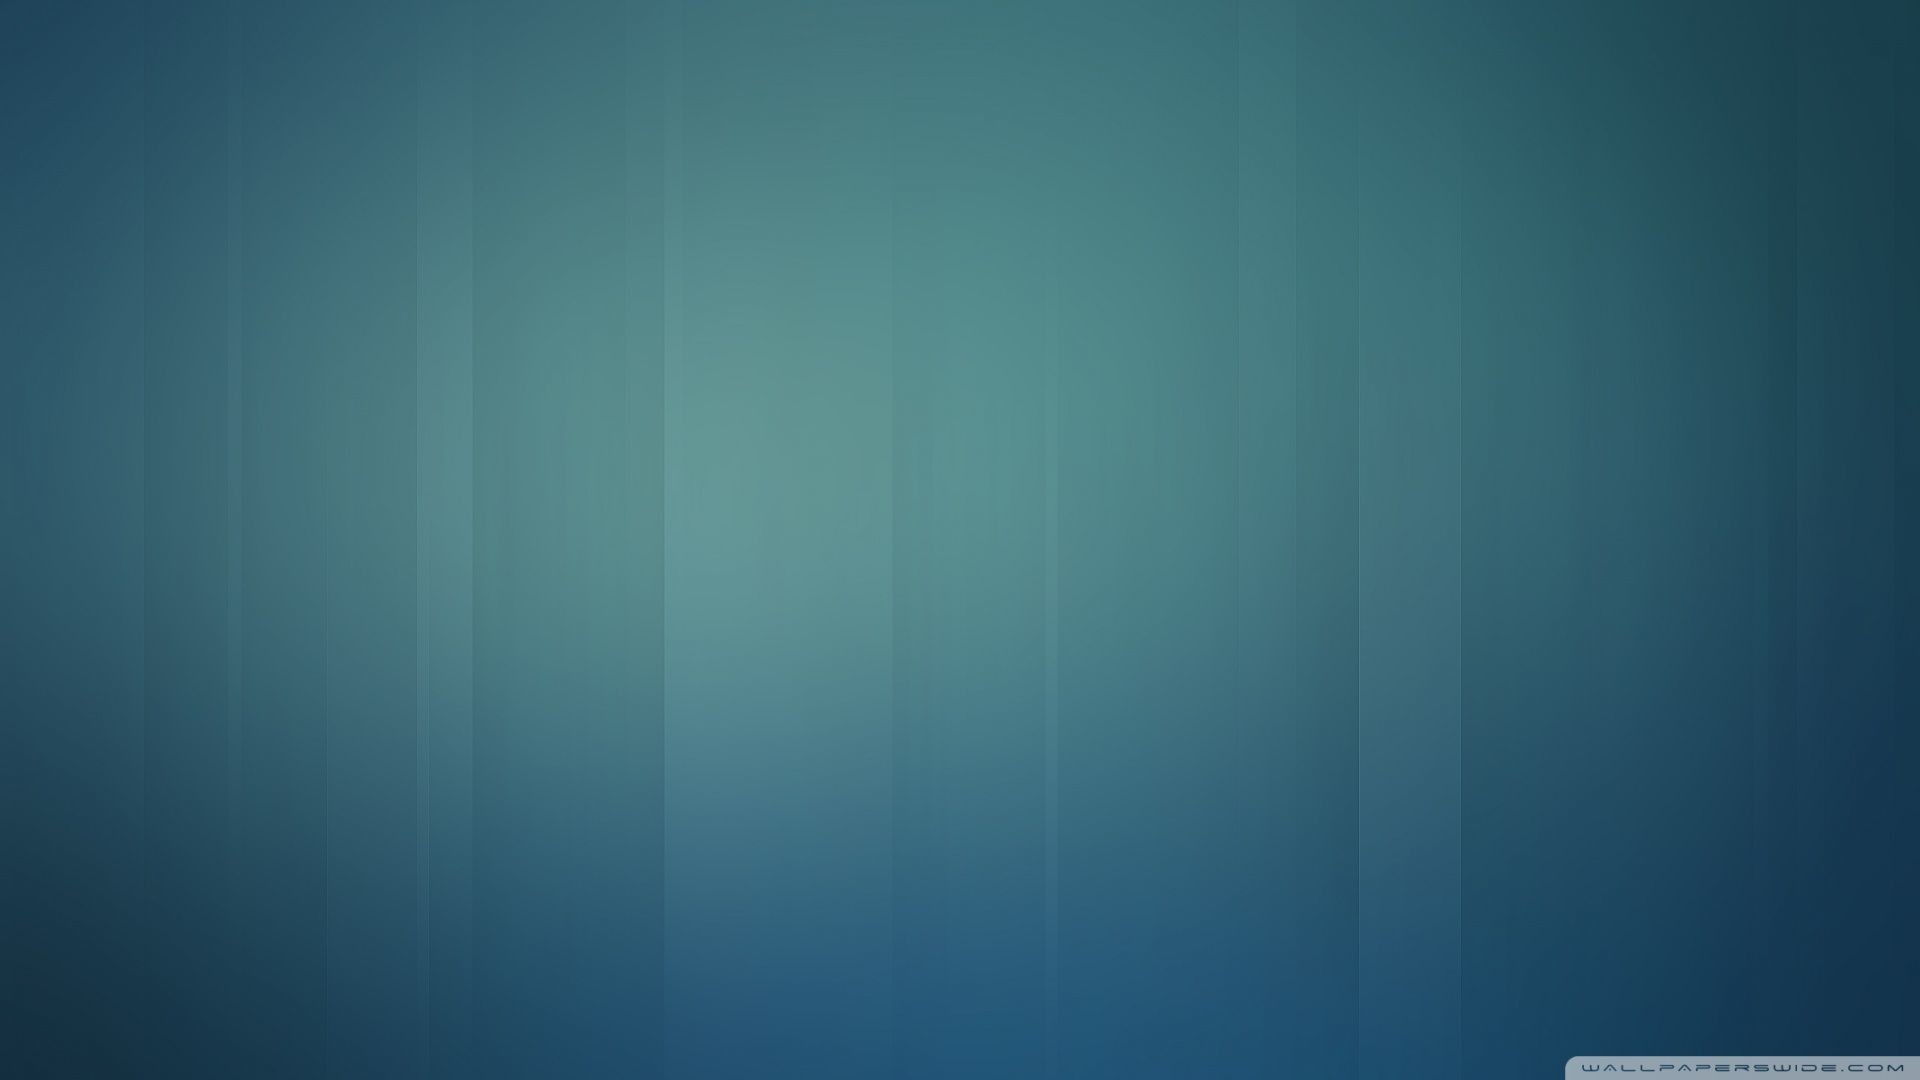 Simple Dark Blue Wallpapers Background 1 HD Wallpapers   Hdimges.